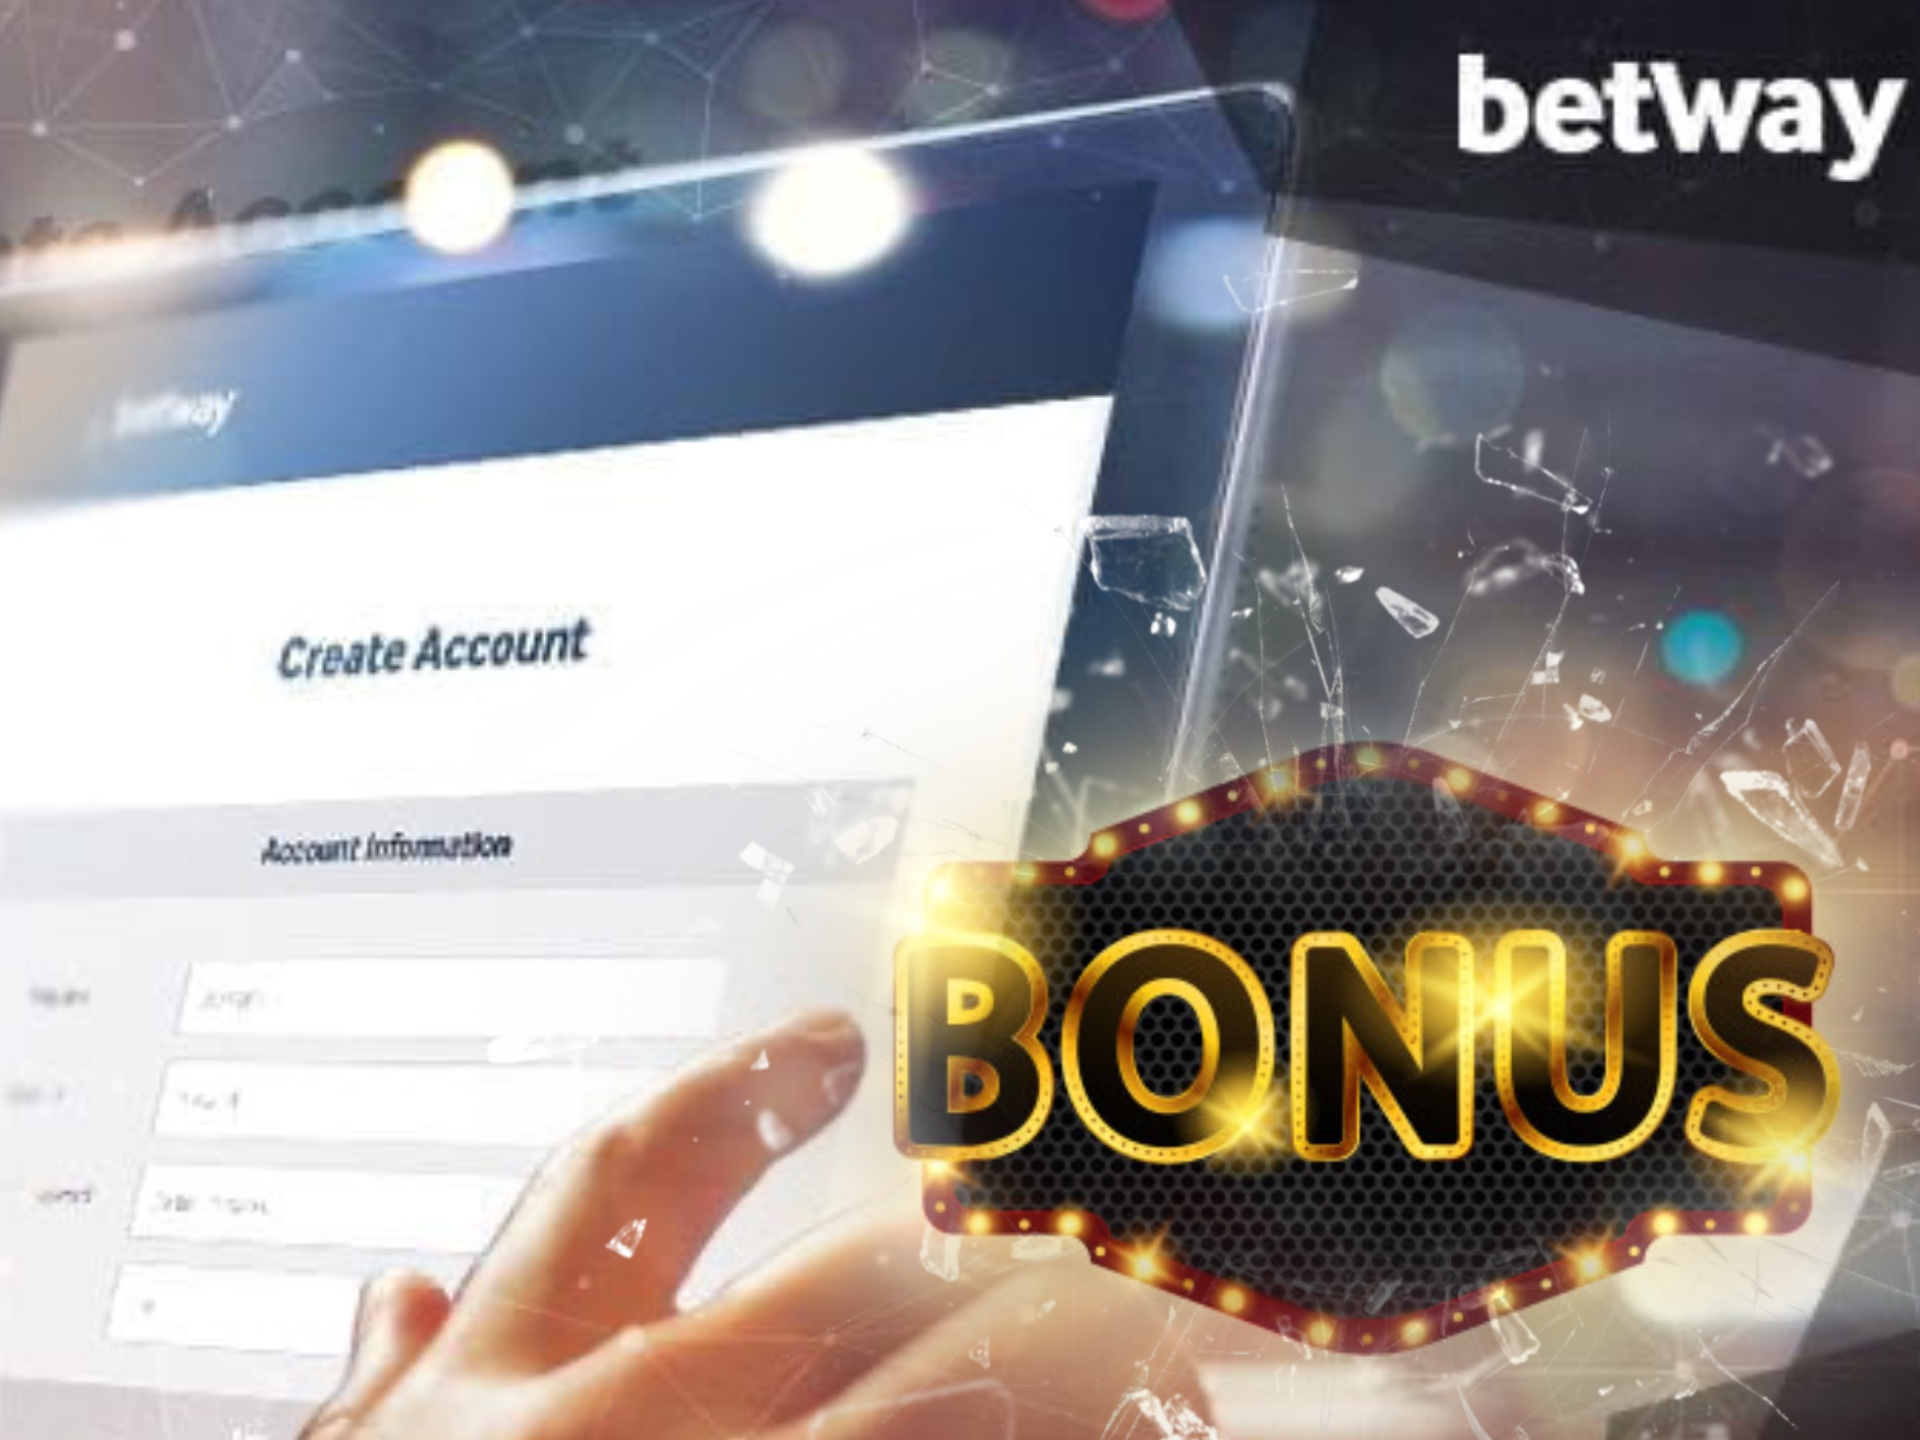 Register at Betway via the mobile app and get attractive bonuses.